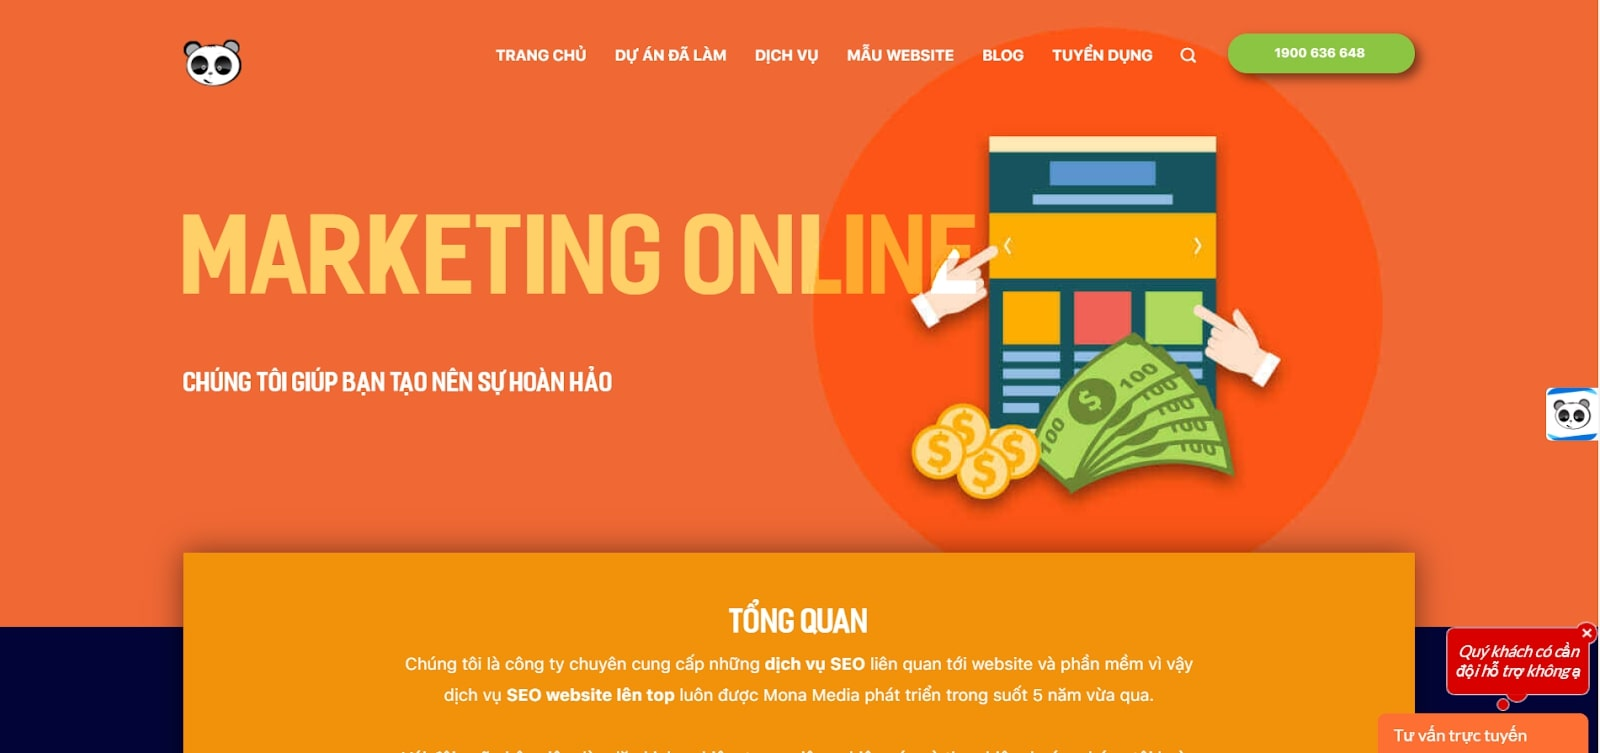 cong-ty-marketing-online-13